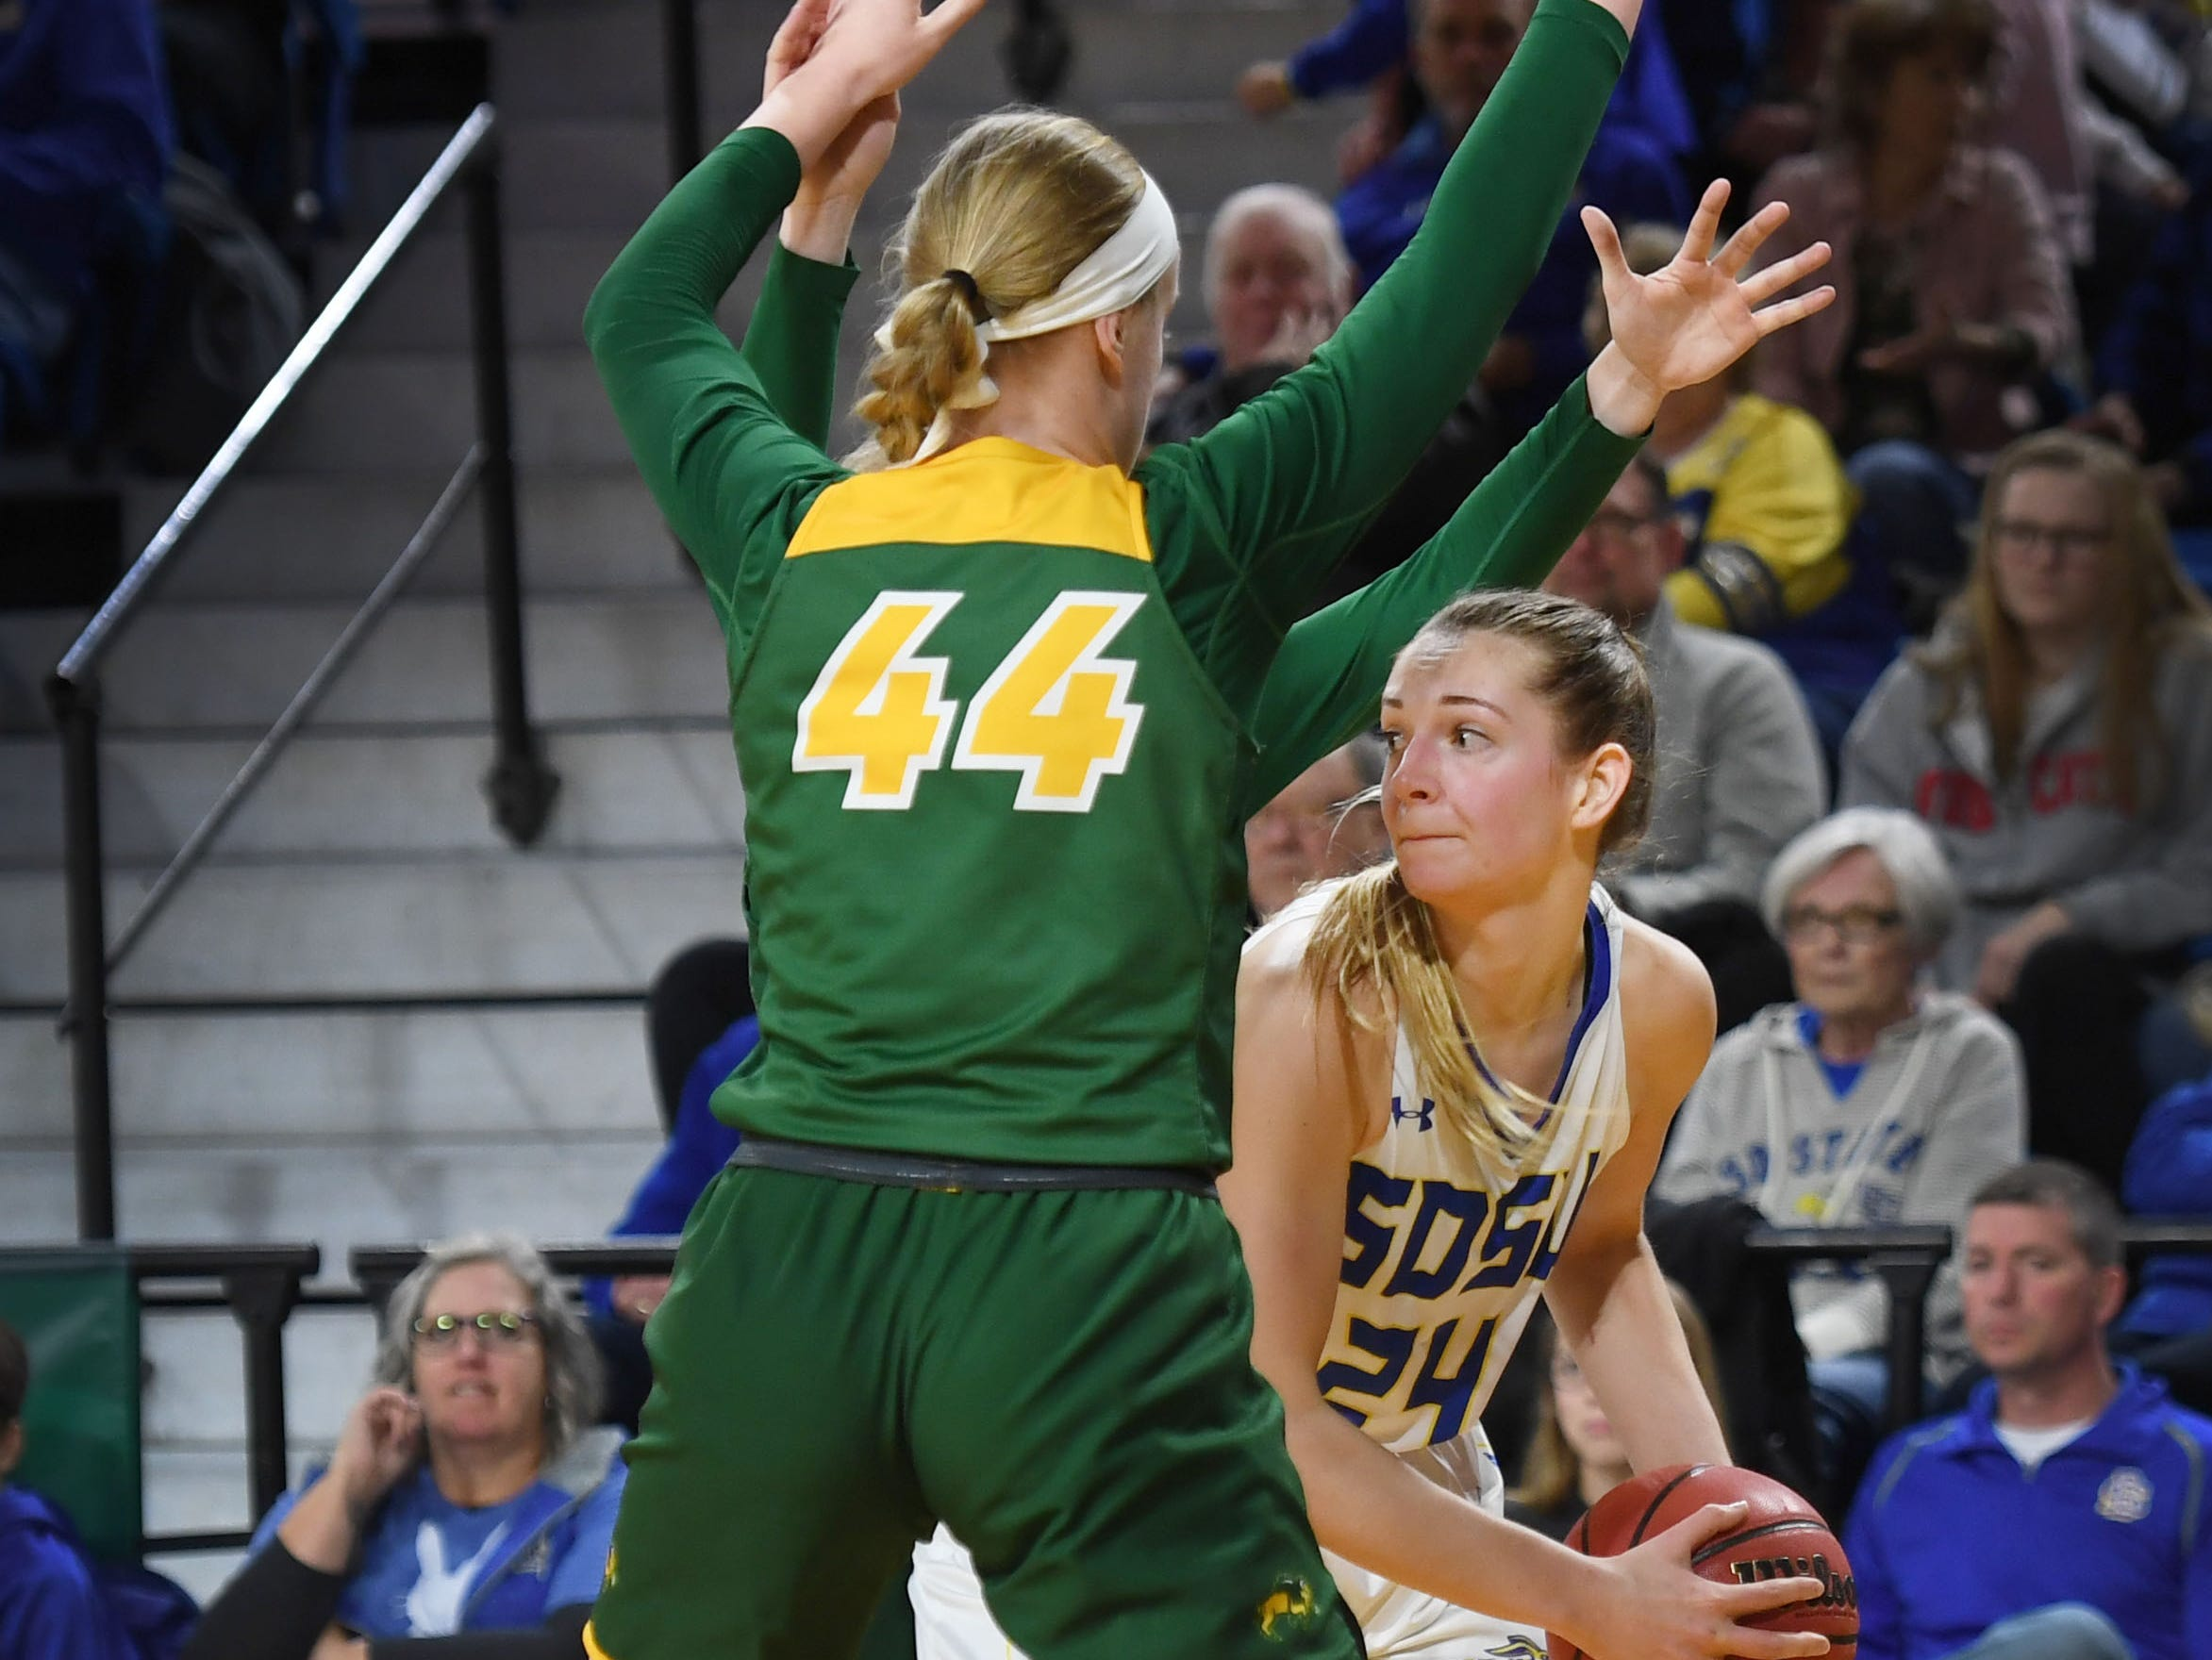 SDSU's Tagyn Larson goes against NDSU's Danneka Voegeli during the game Wednesday, Jan. 23, at Frost Arena in Brookings.